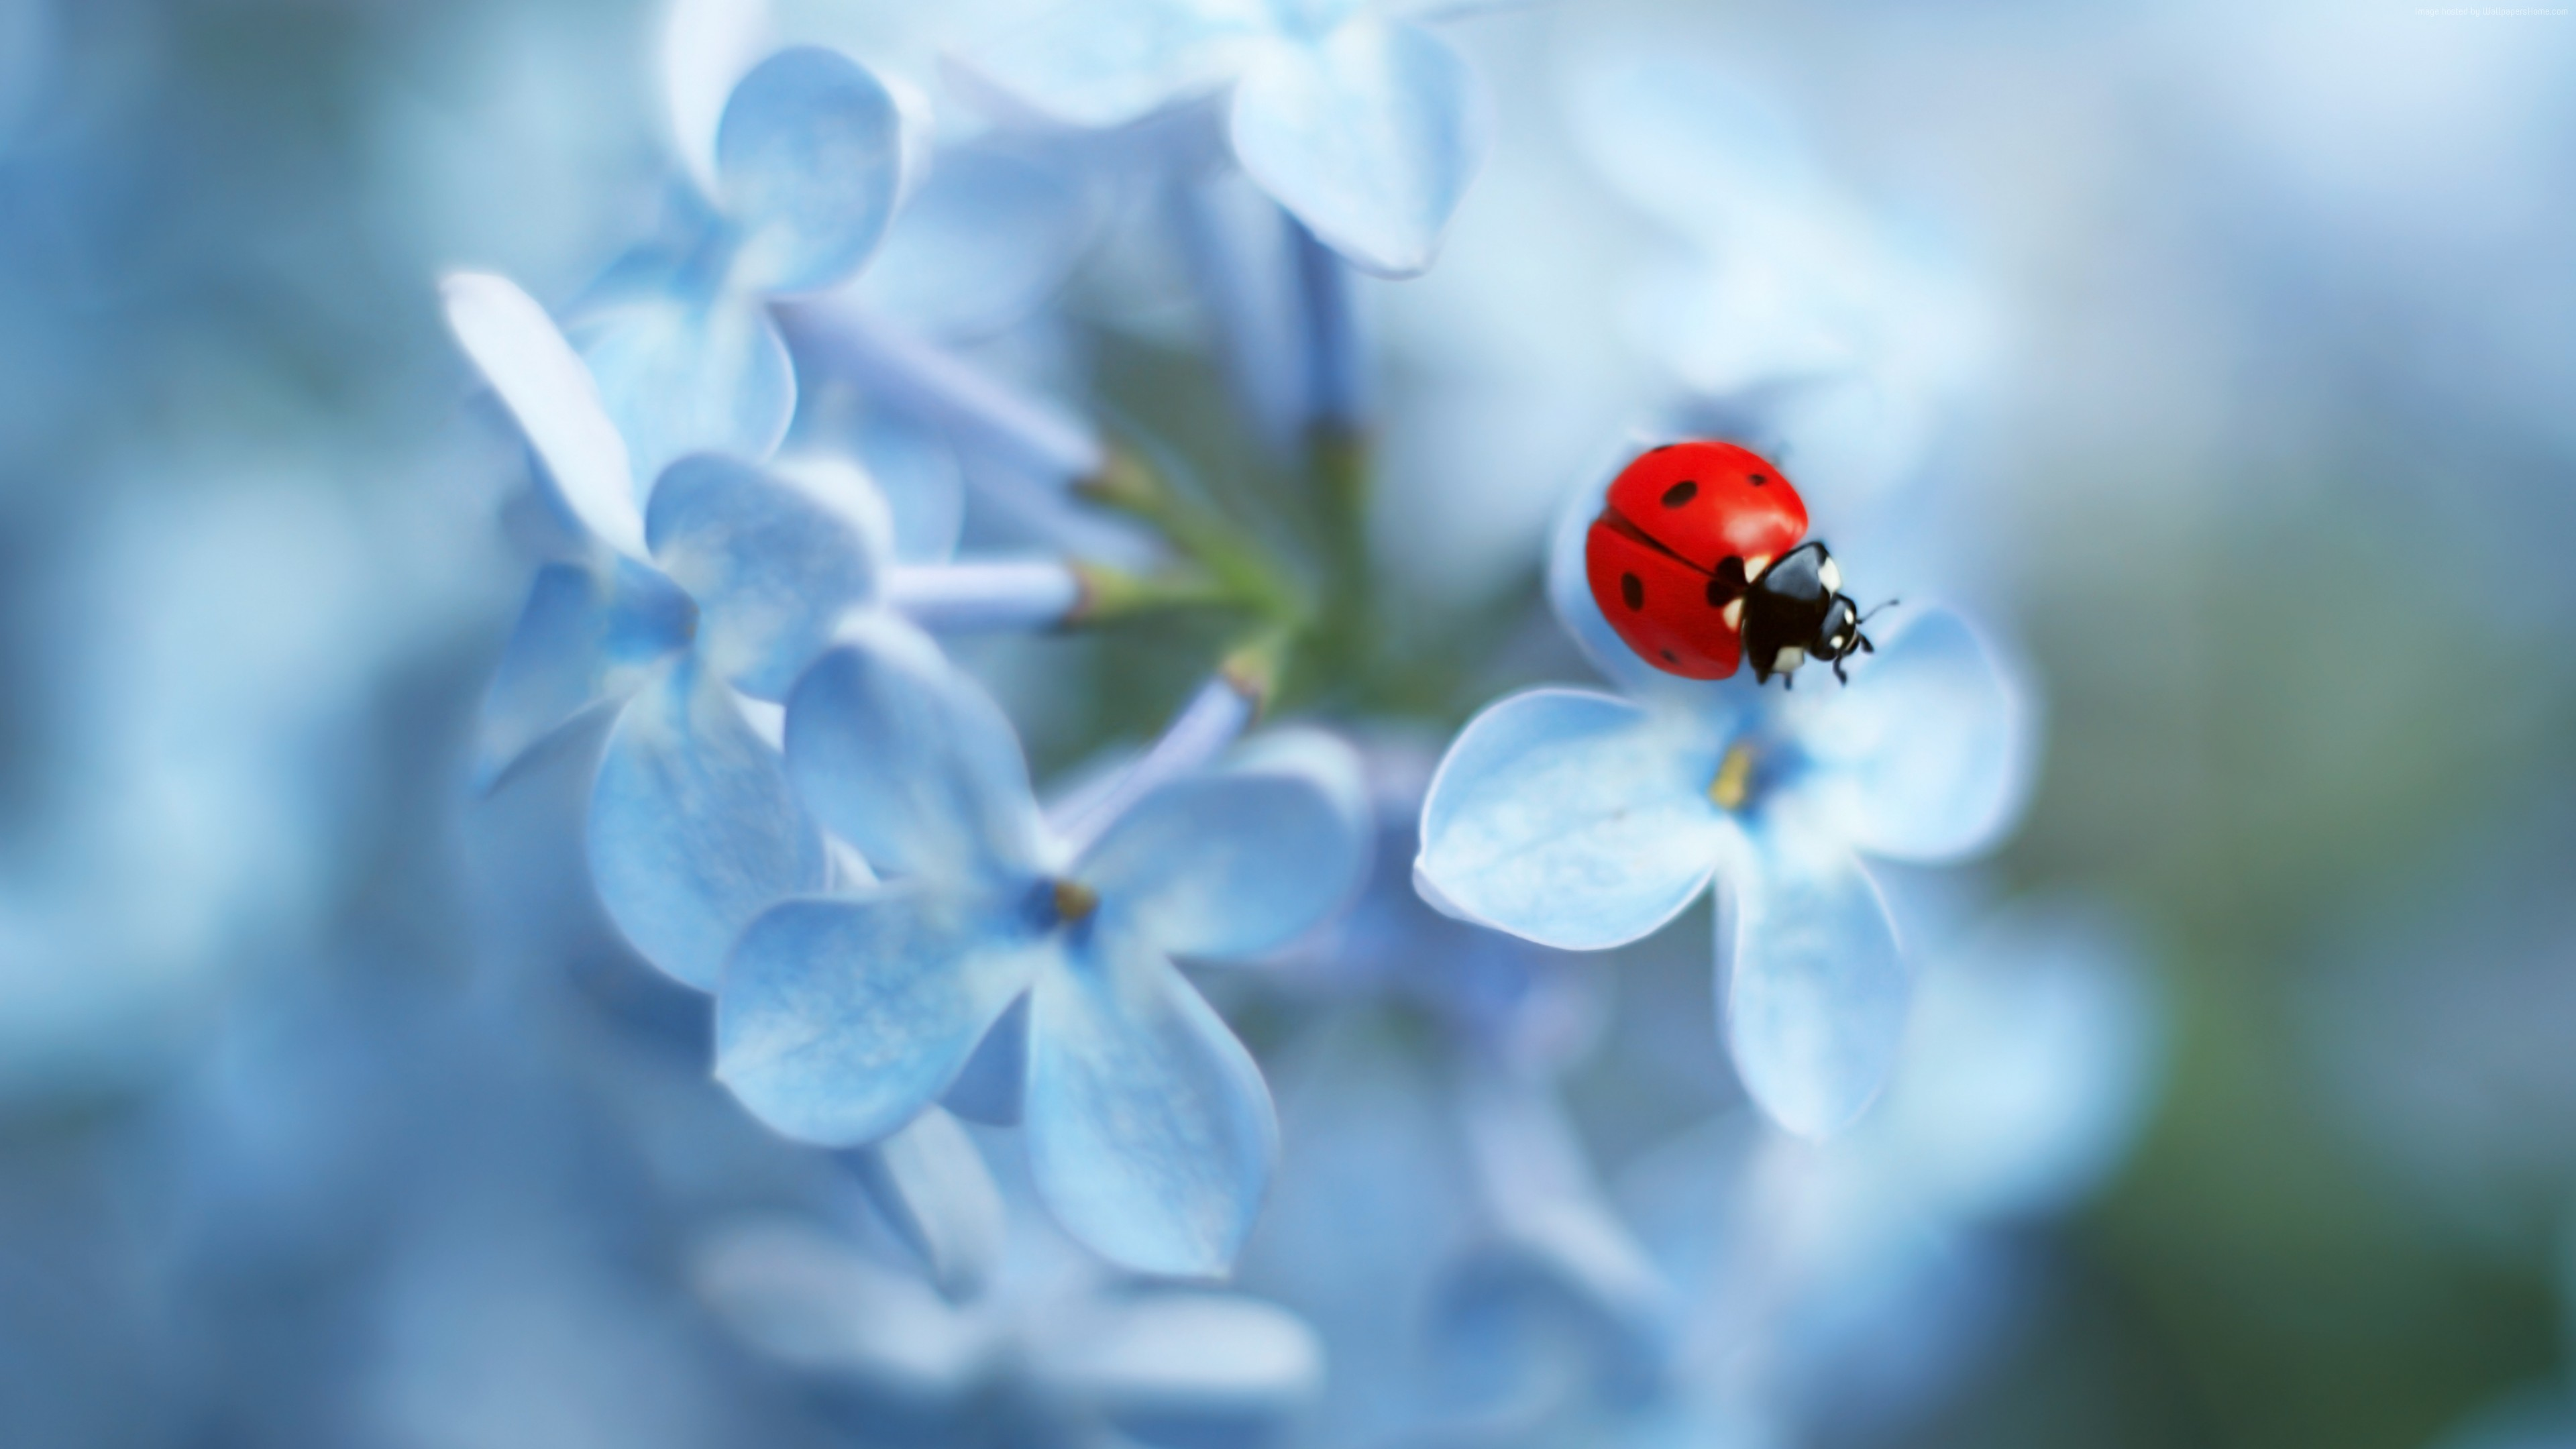 Wallpaper Blue Flower, Insect, Ladybug, 4K, Animals